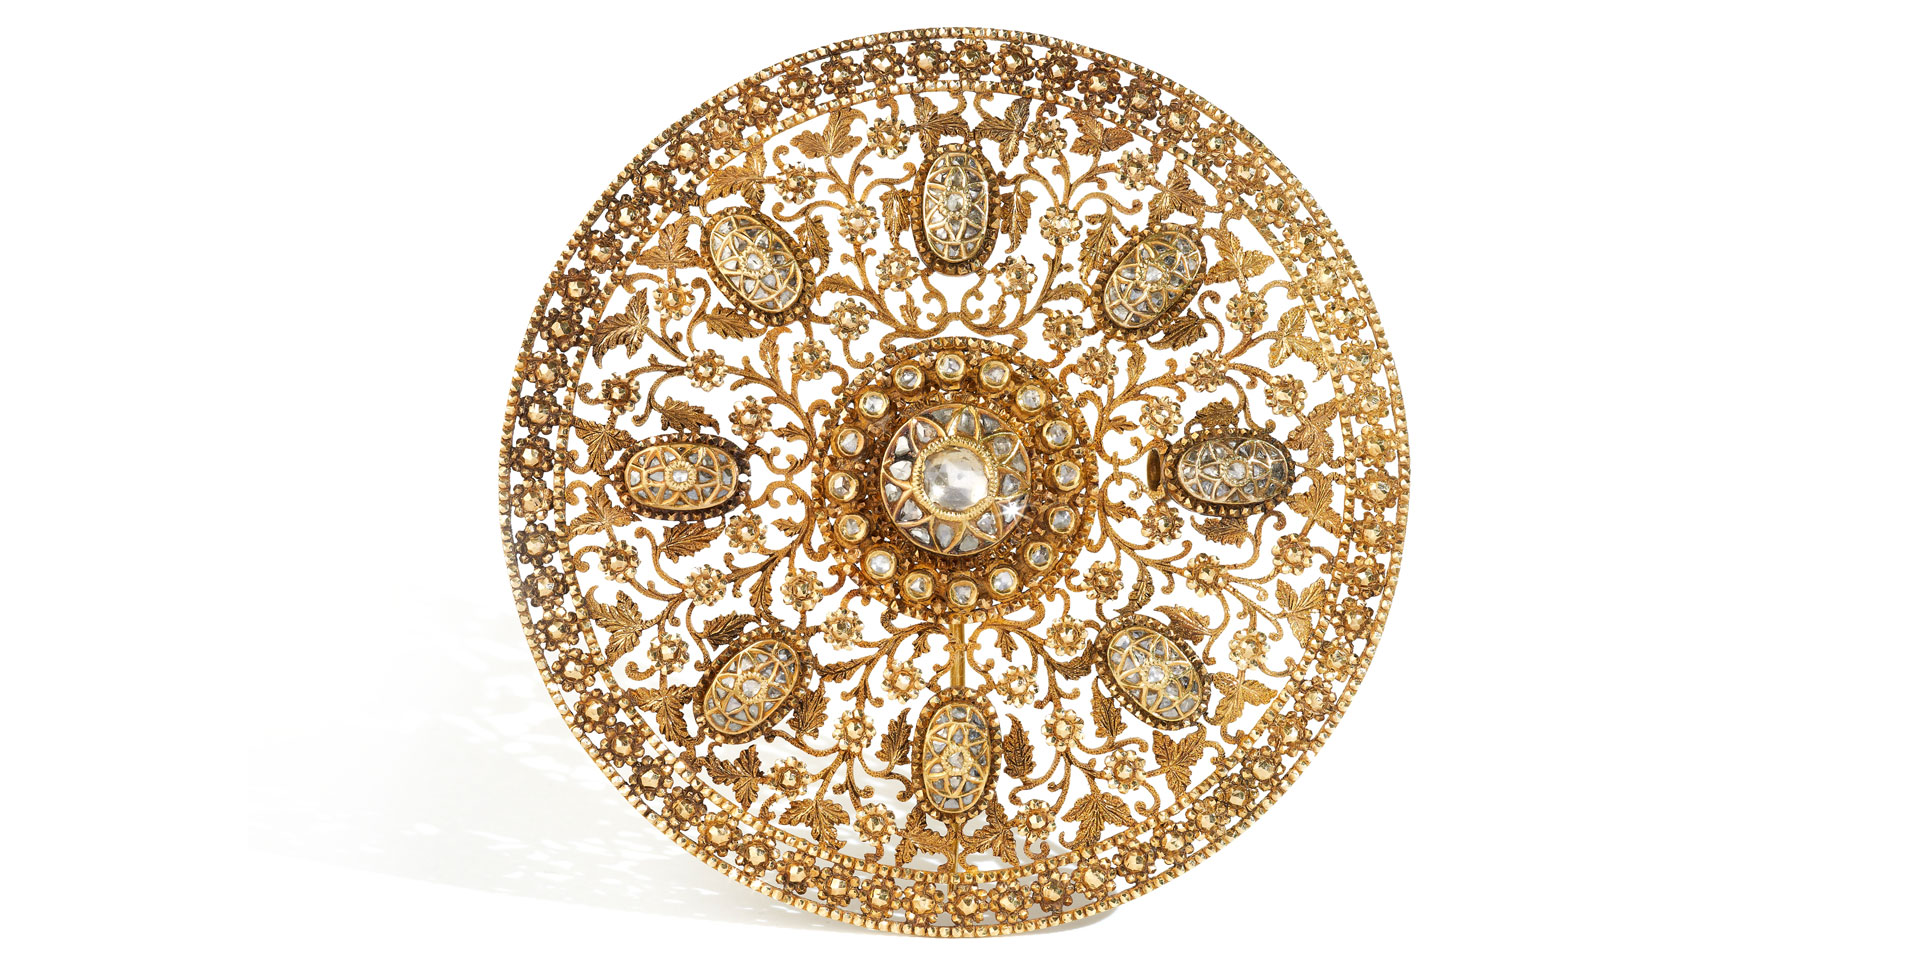 Al Thani: Gold and diamond hair ornament